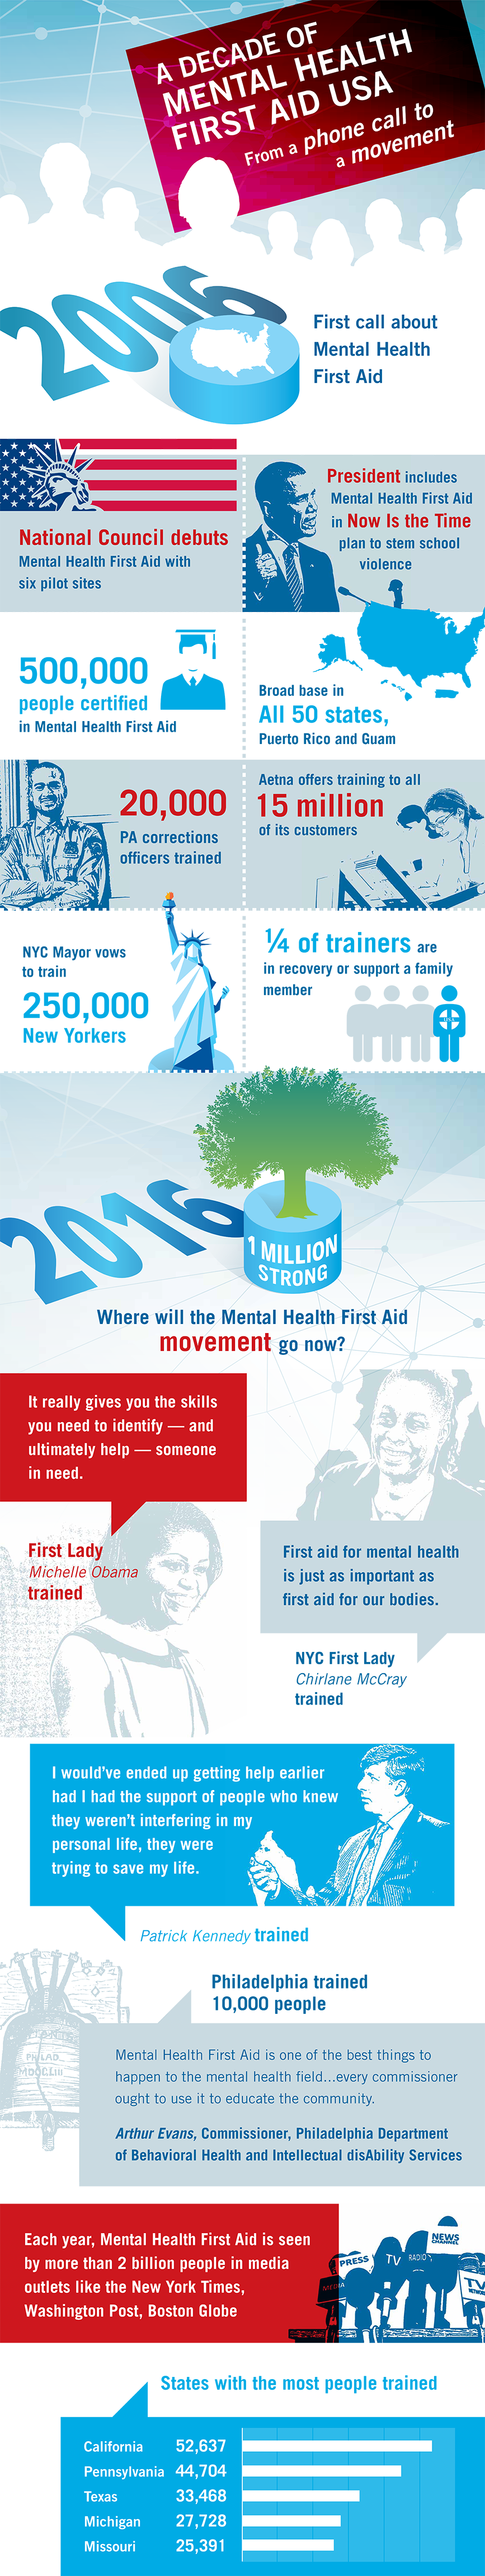 Be 1 in a million mental health first aid a decade of mhfa xflitez Choice Image